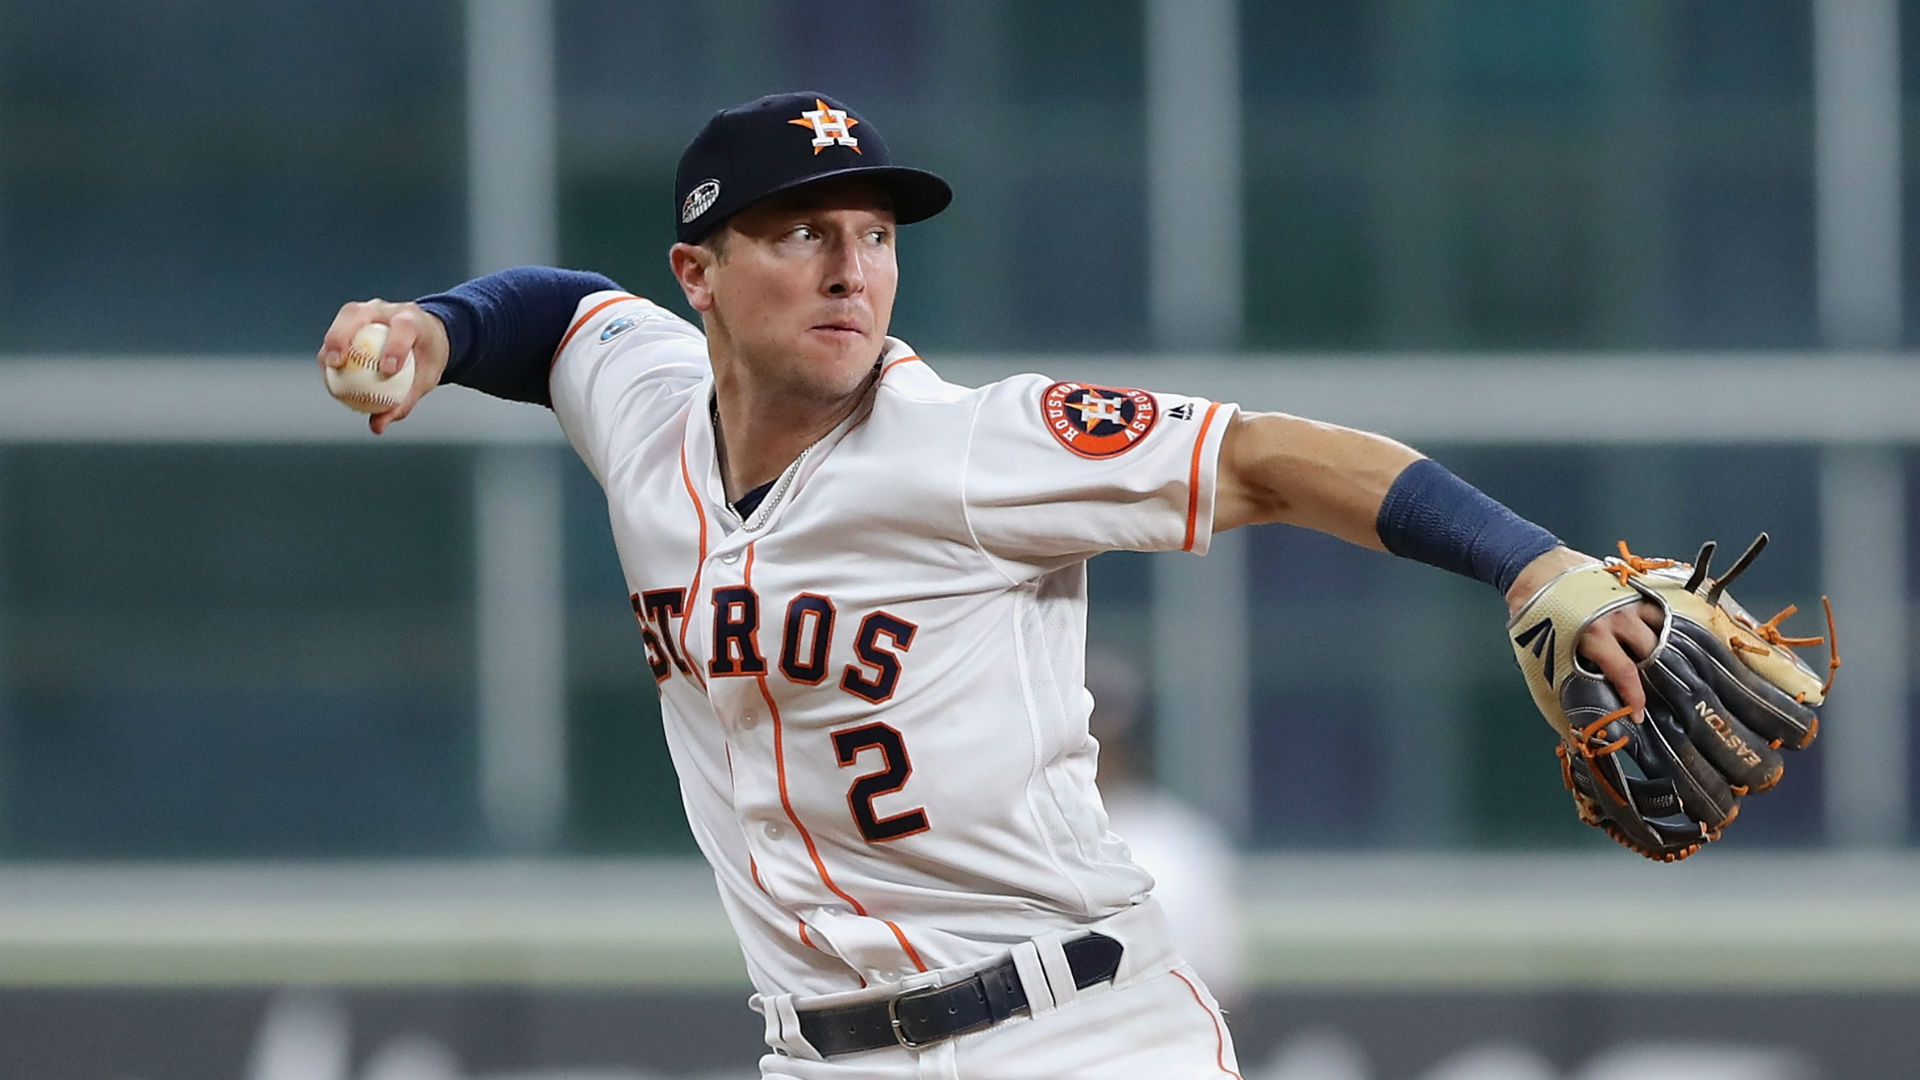 Bregman, 24, had arthroscopic surgery Friday on his right elbow to remove loose bodies.